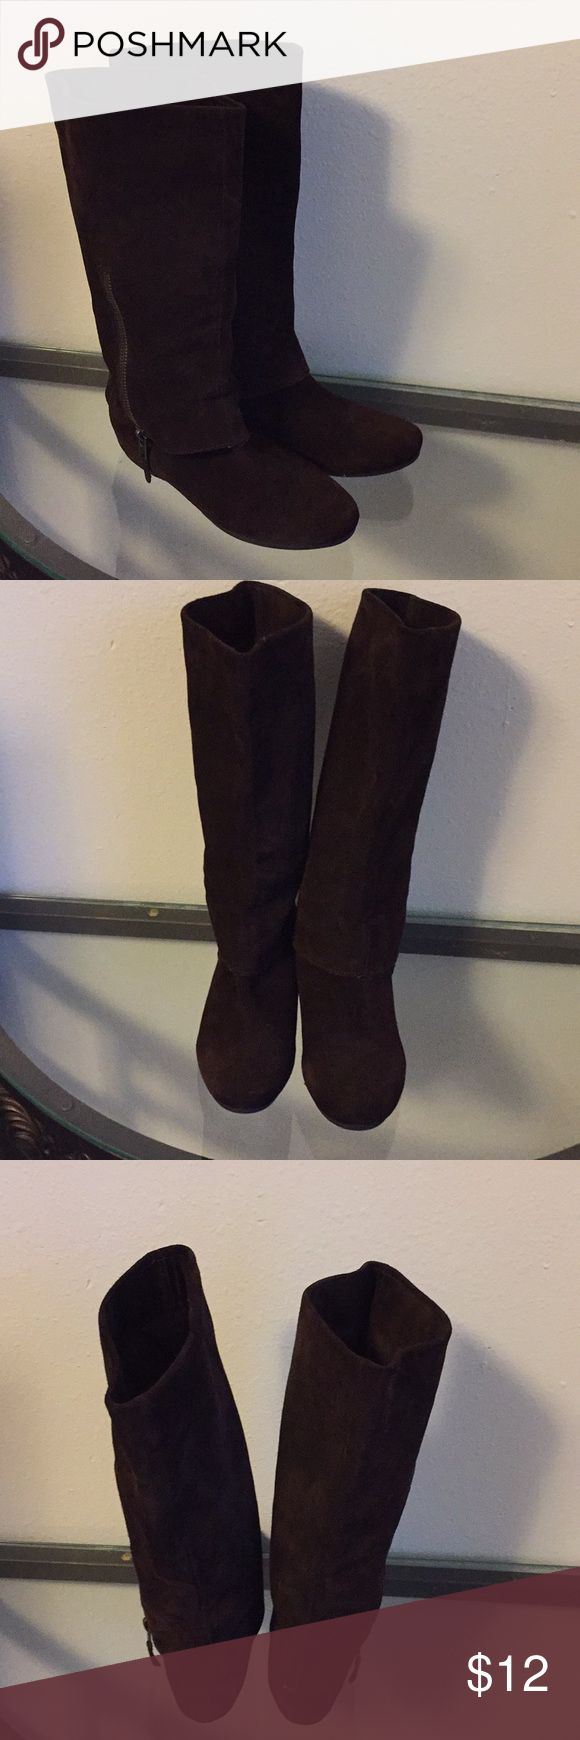 Steve Madden boots Steve Madden boots brown suede flat very stylish in great condition Steve Madden Shoes Over the Knee Boots